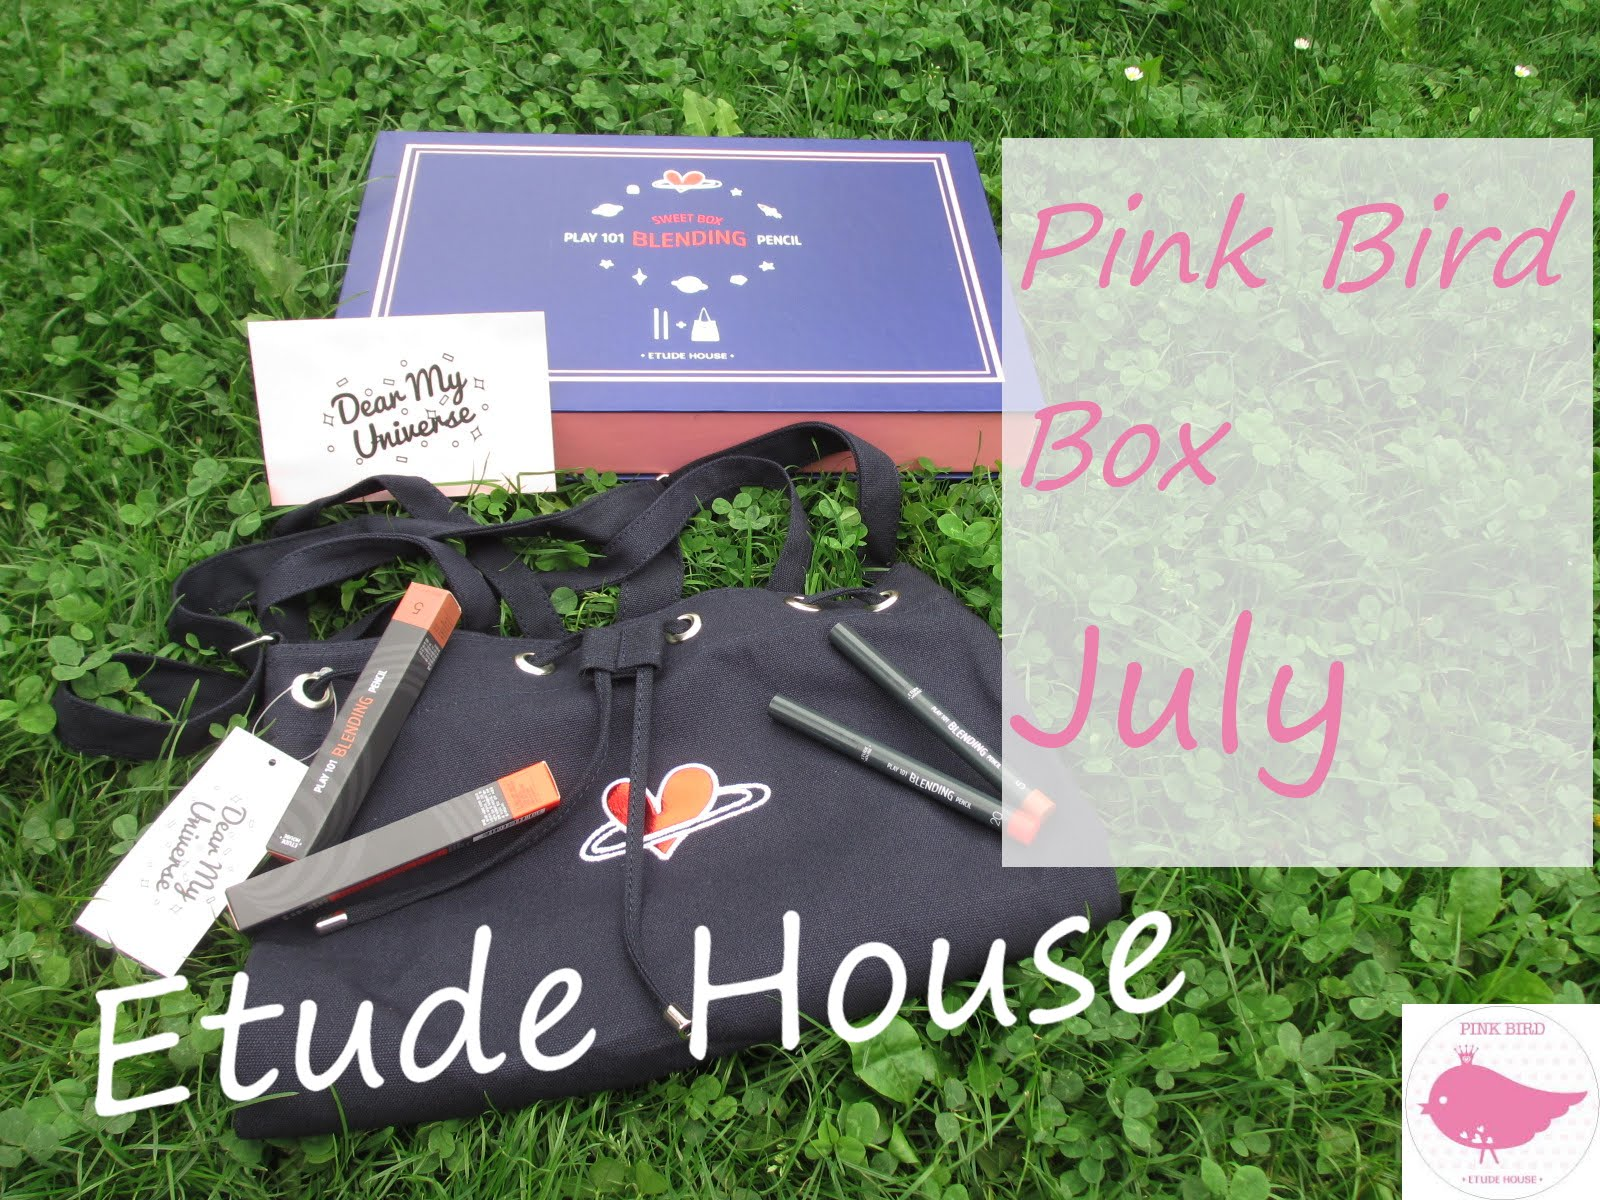 Pink Bird #1 JULYBOX Video